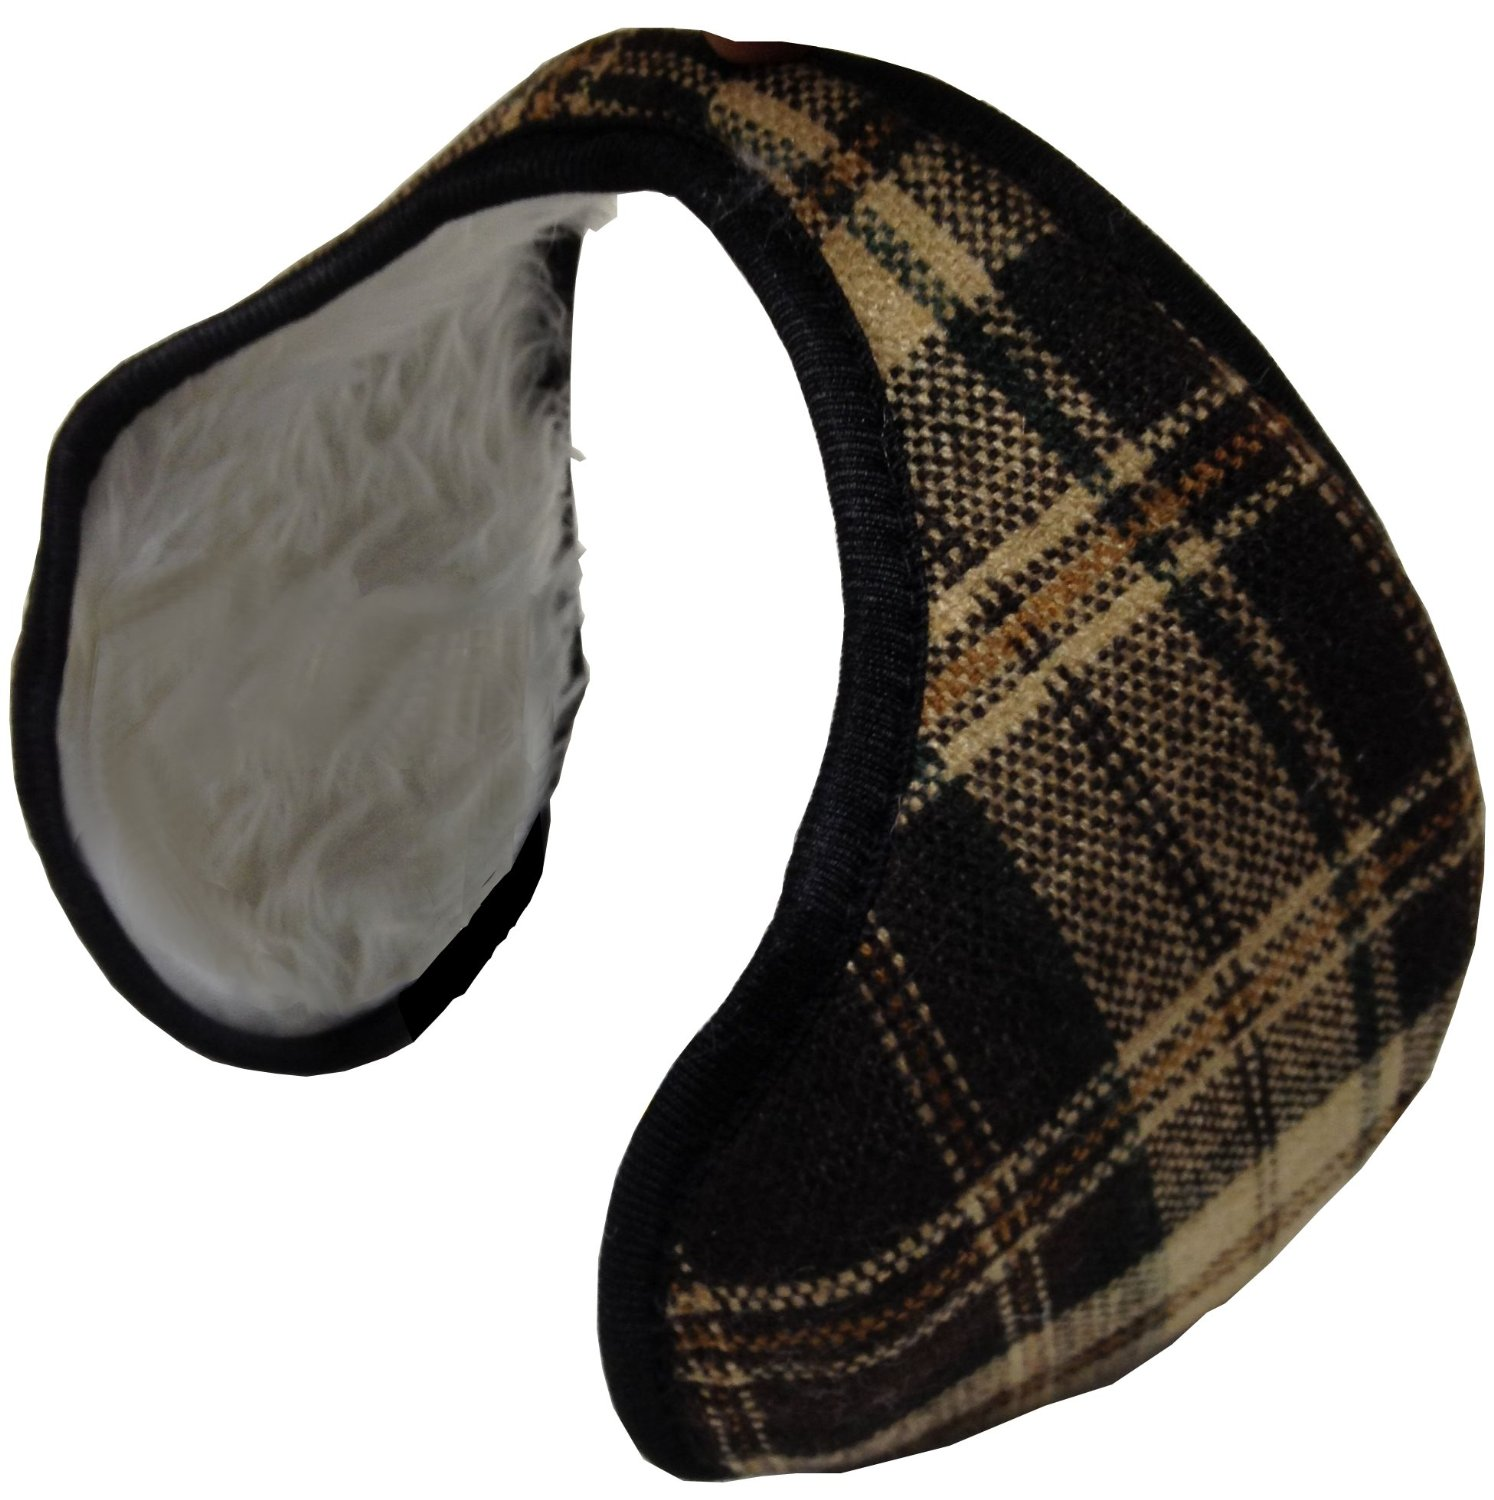 Find great deals on eBay for mens ear muffs. Shop with confidence.